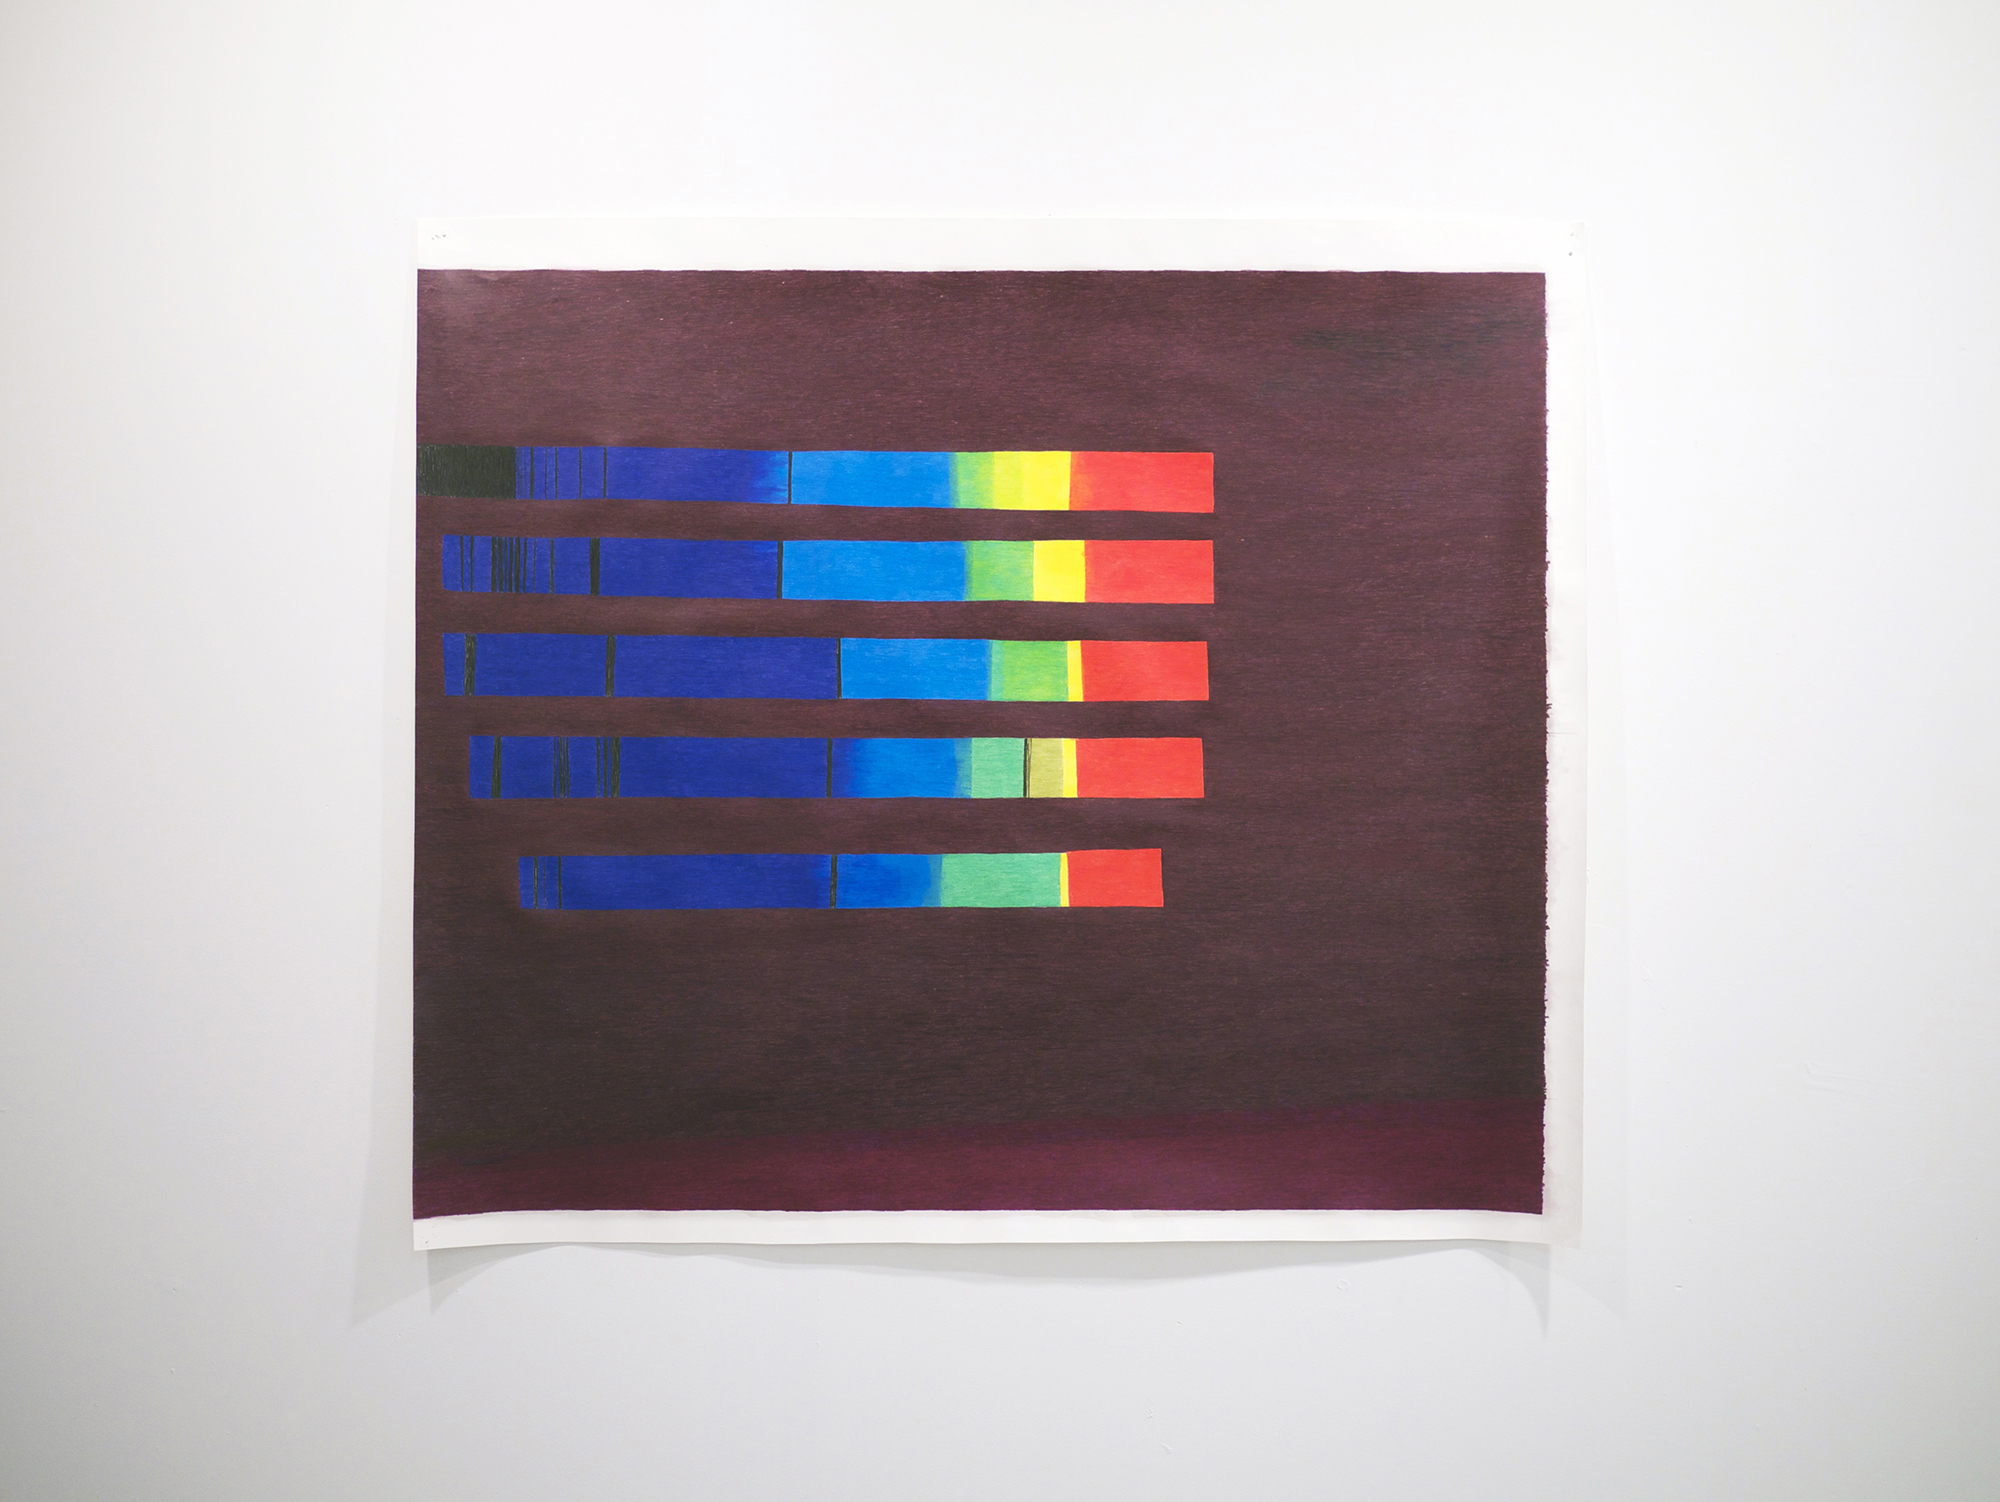 Carrie Gundersdorf  Five Spectra of Vega  Colored pencil and watercolor paper  44 inches x 50 inches  2013